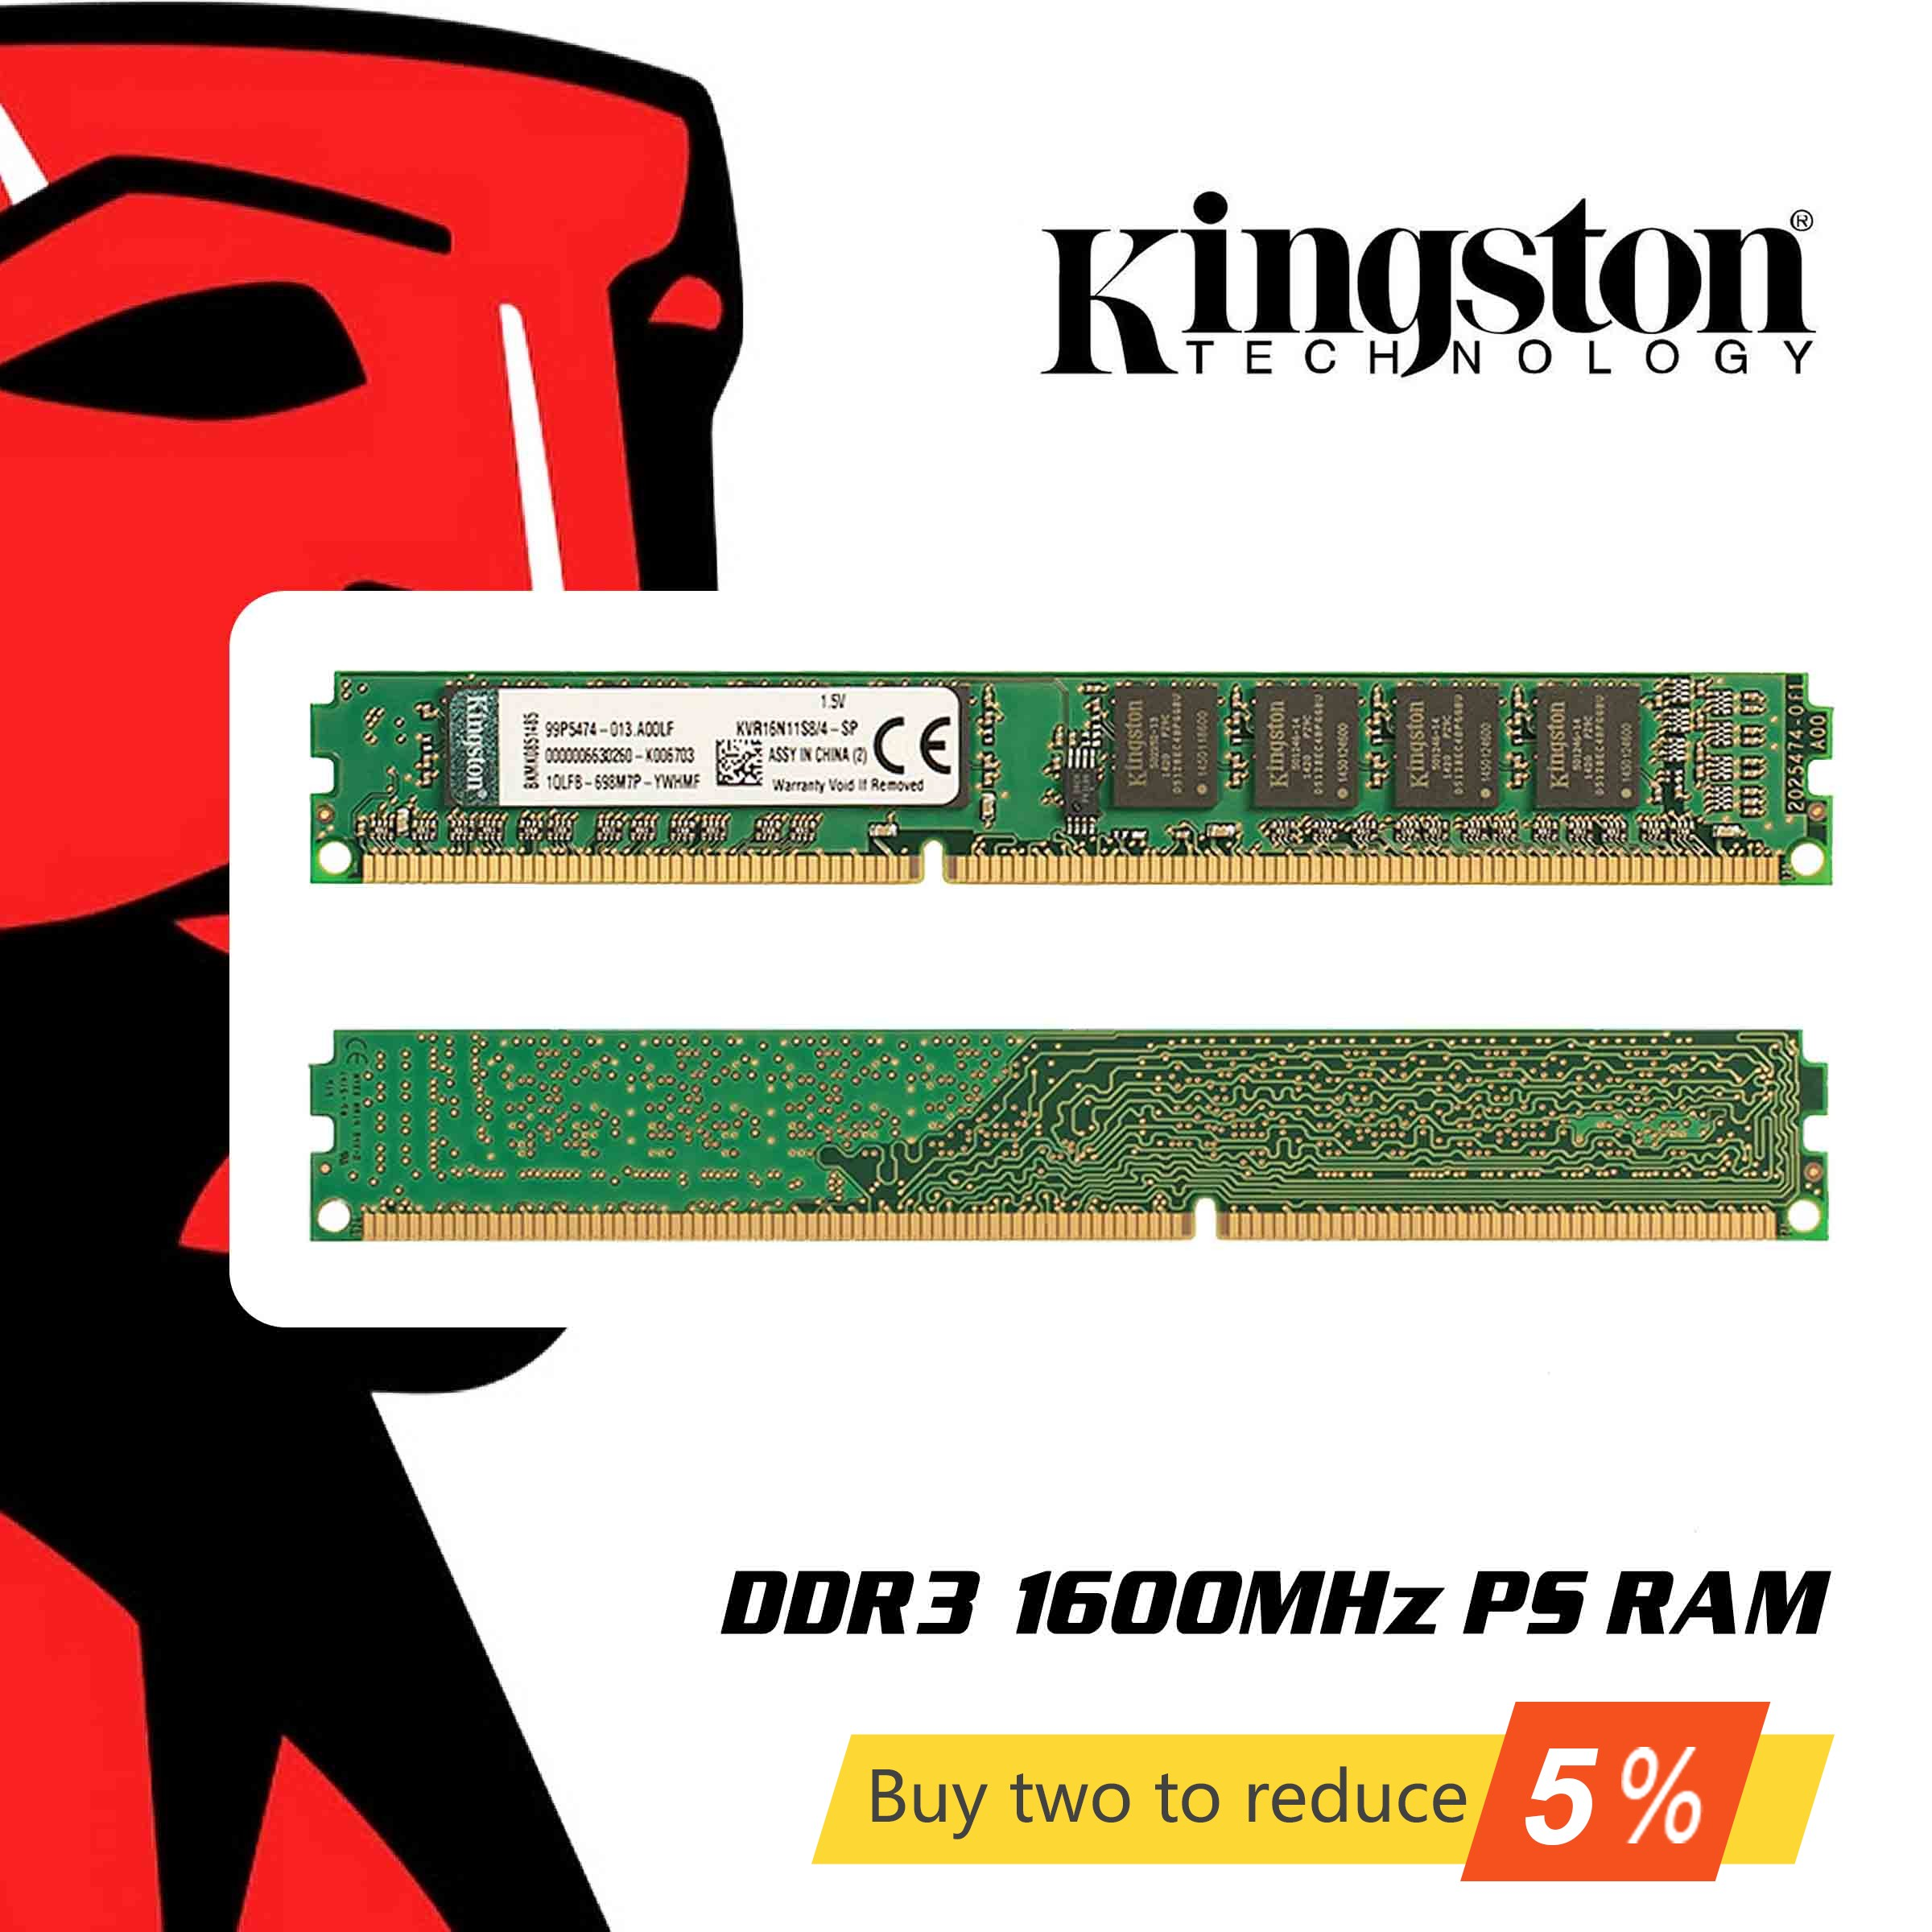 Original Kingston <font><b>RAM</b></font> Memory <font><b>DDR3</b></font> <font><b>1600MHZ</b></font> 4GB 8GB Memoria <font><b>RAMs</b></font> 1600 MHz 8 Gigabytes Gigs Stick for Desktop Laptop PC Notebook image